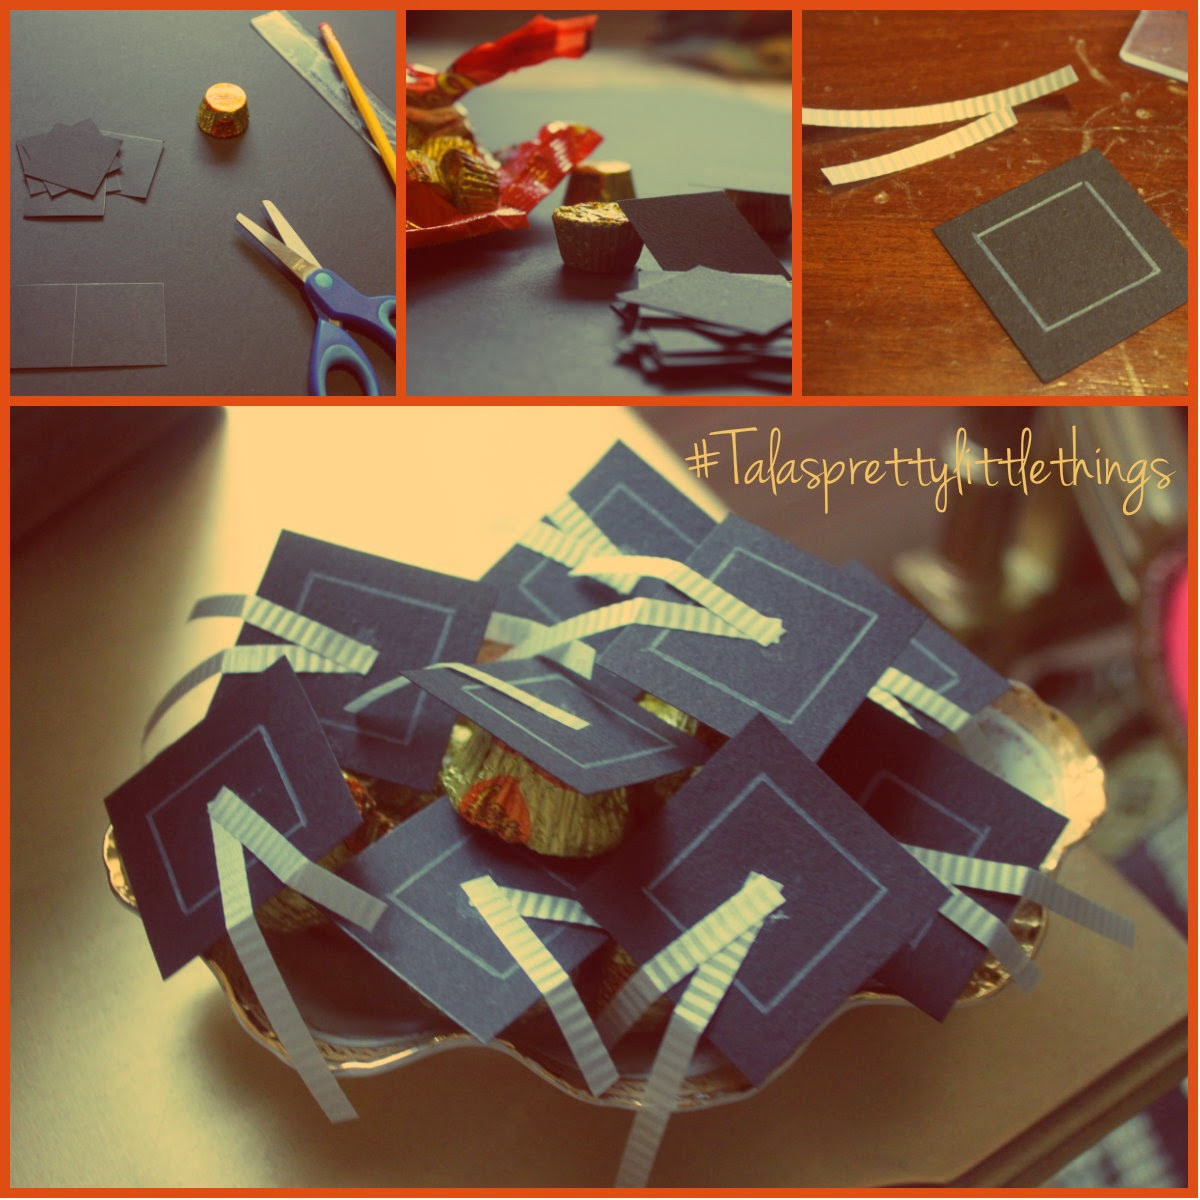 Best ideas about Diy Graduation Gift Ideas . Save or Pin Tala s Pretty Little Things DIY Graduation Gift Ideas Now.